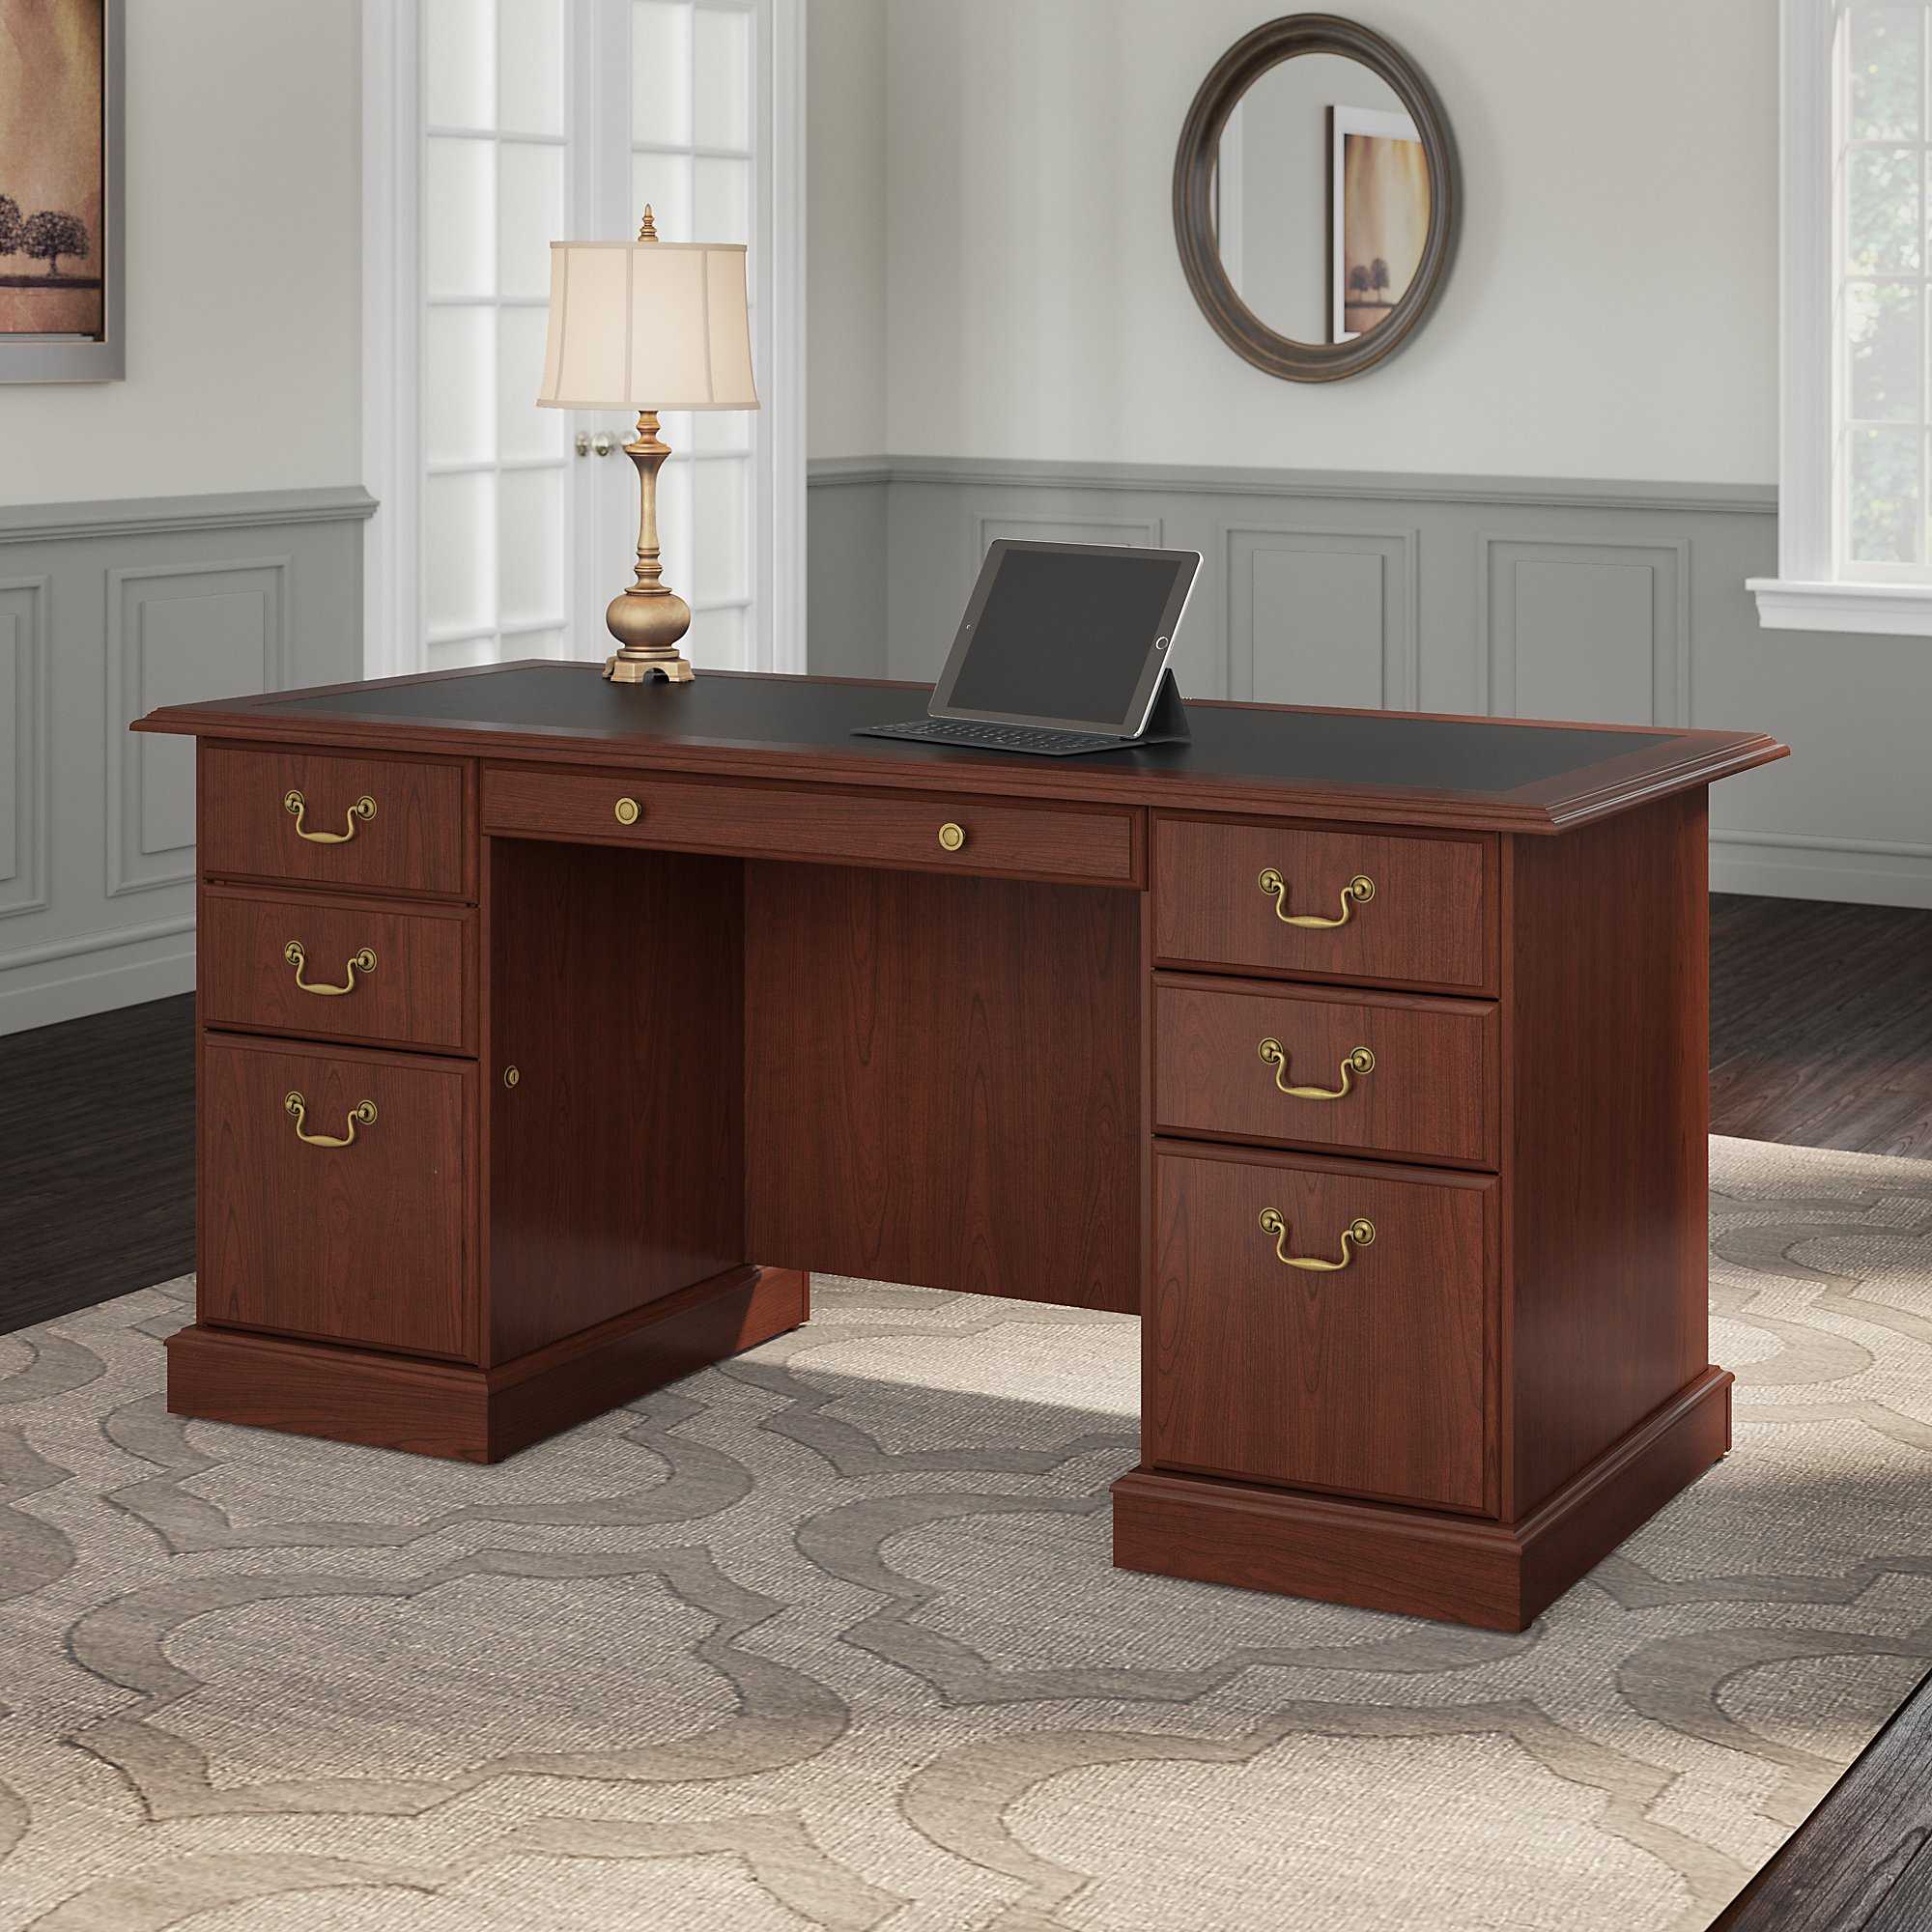 Superb Bush Furniture Saratoga Executive Desk In Harvest Cherry And Black